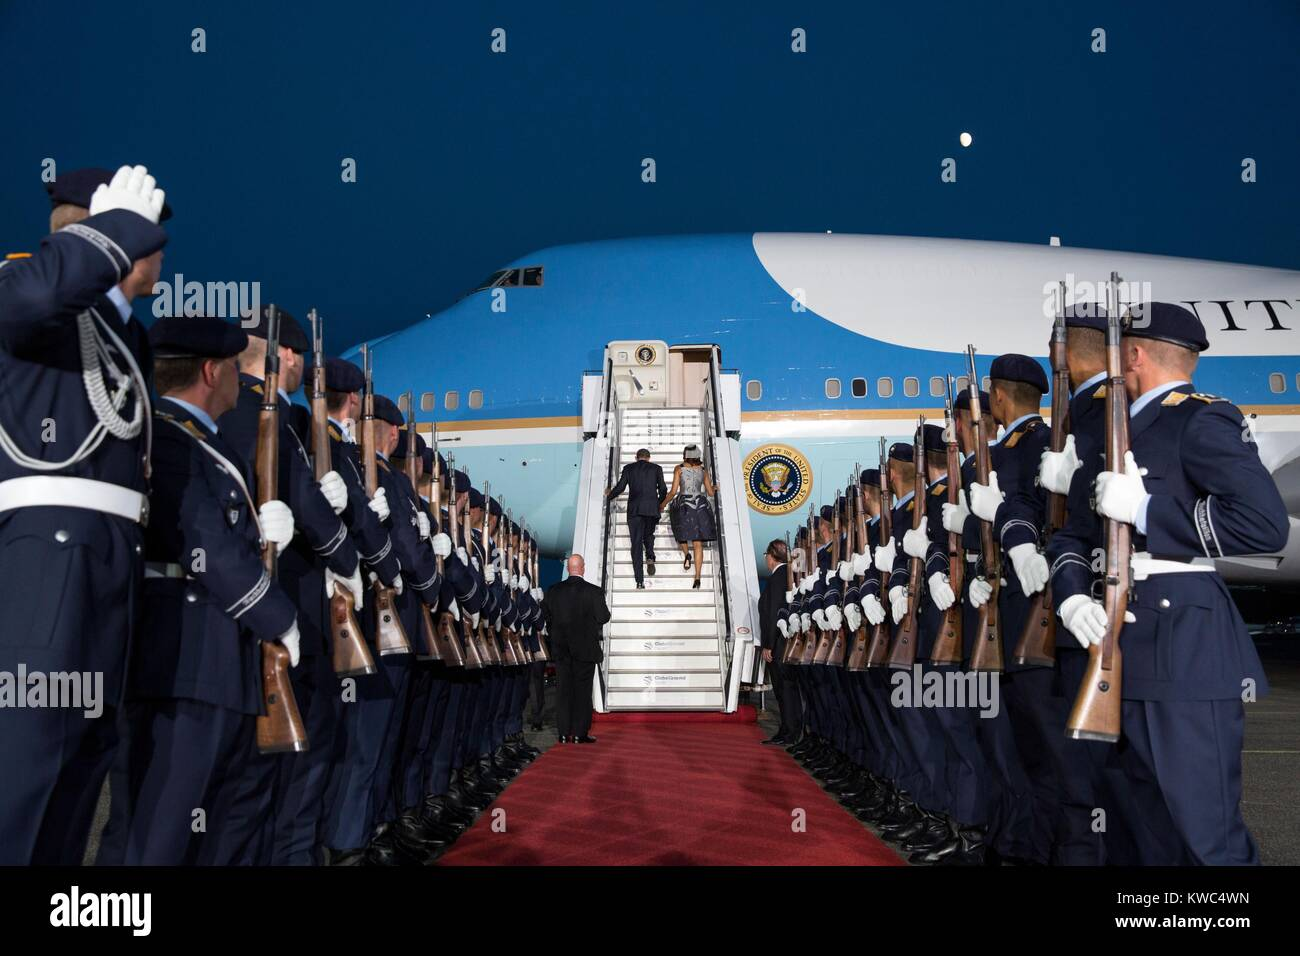 President Barack Obama and First Lady Michelle Obama departing Berlin, Germany. June 19, 2013. A 25 man honor guard lines their path at U.S. Air Force One at Tegel Airport (BSLOC_2015_13_135) Stock Photo